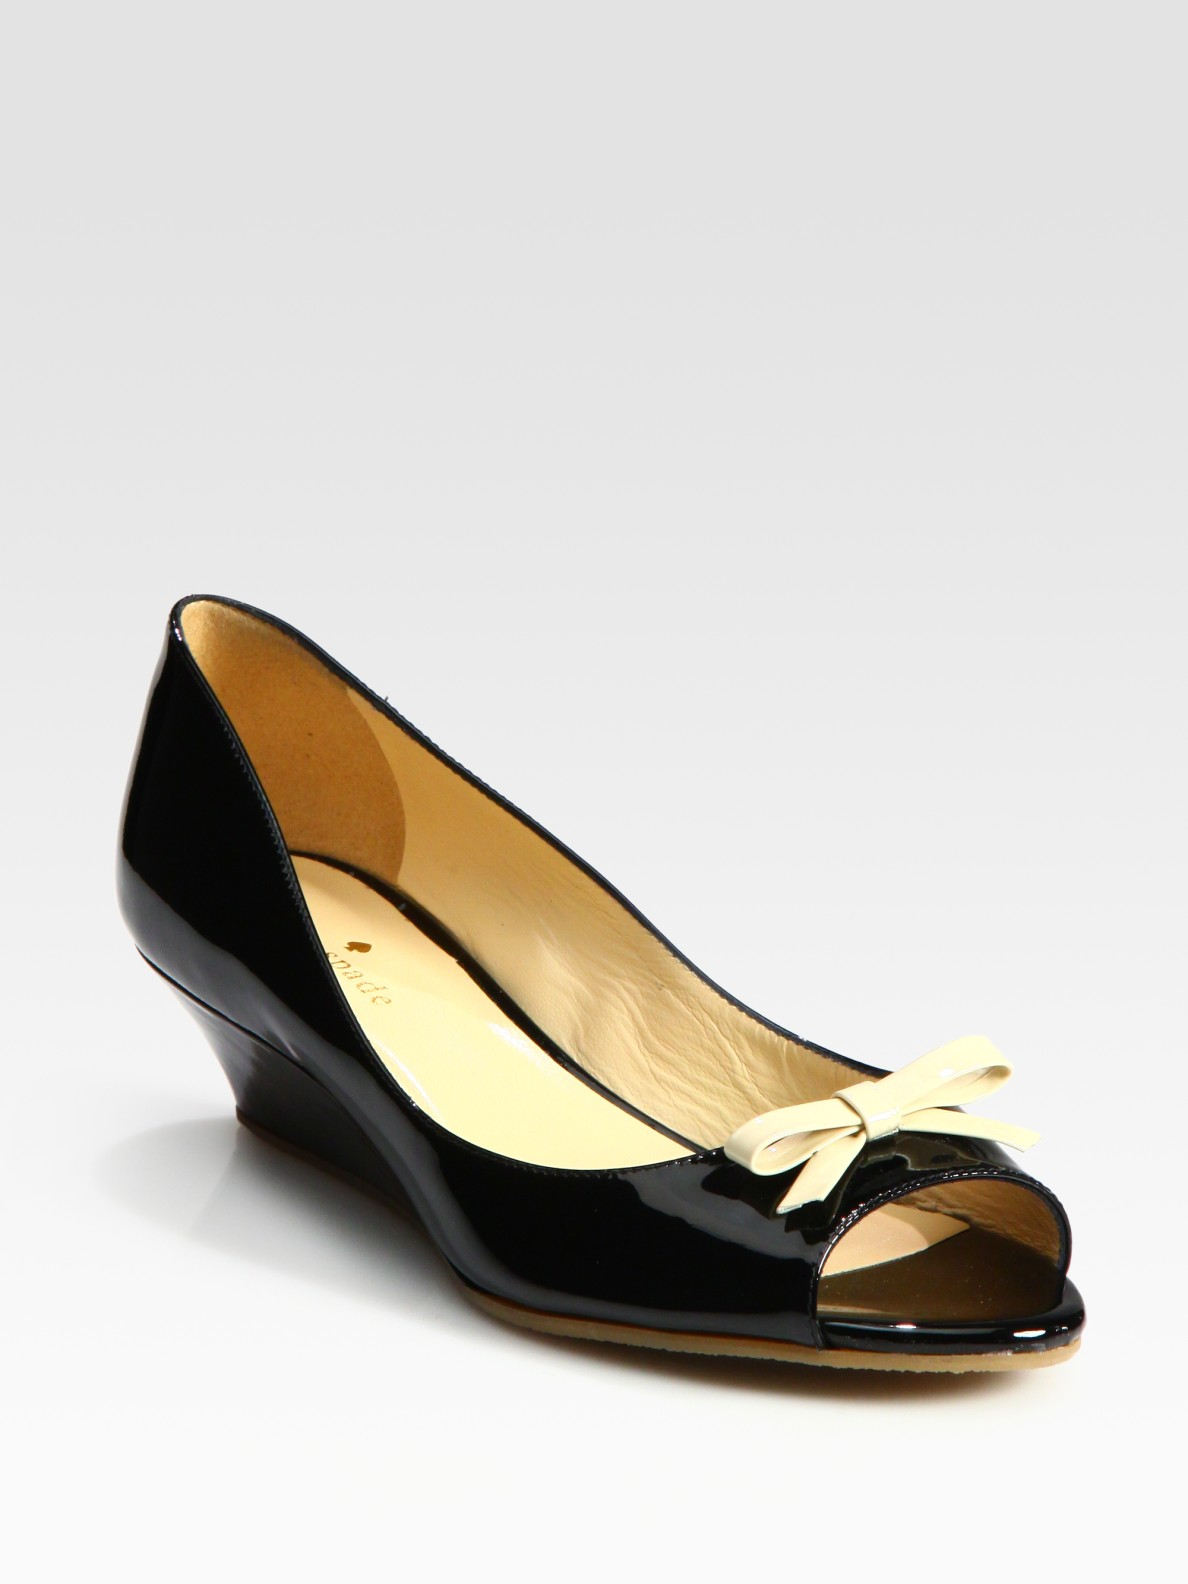 Lyst Kate Spade New York Tracey Patent Leather Peep Toe